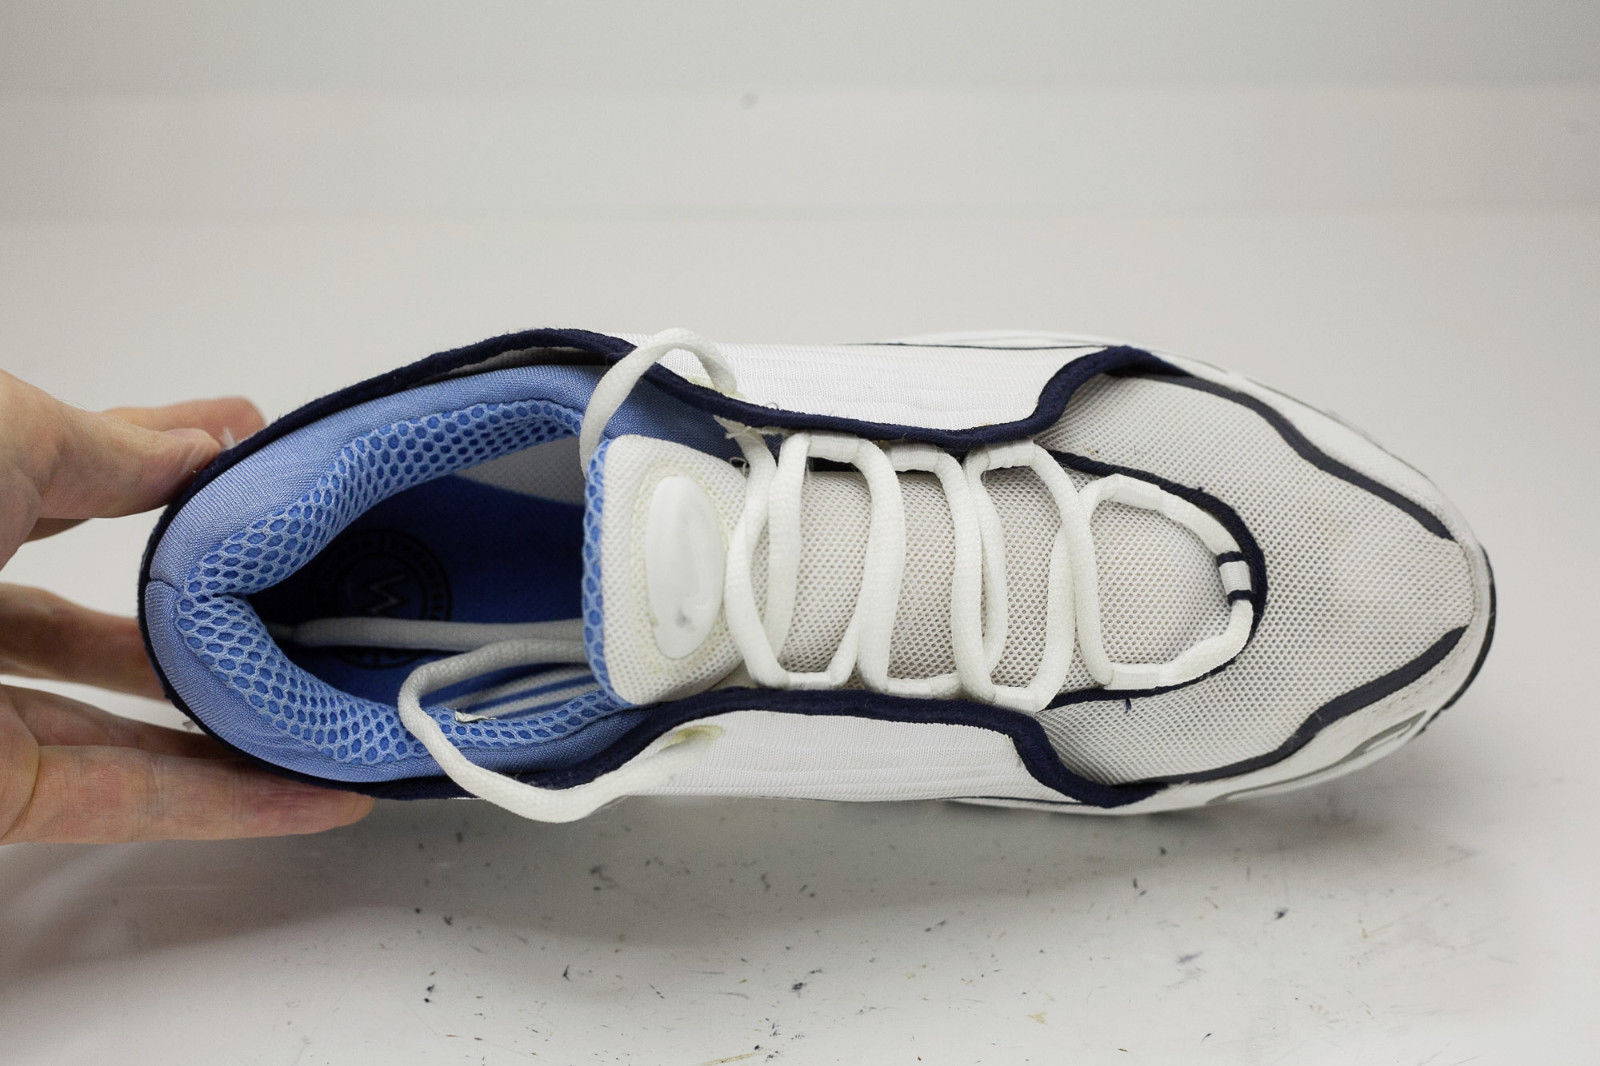 Nike 10 White Blue Running Shoes Women's